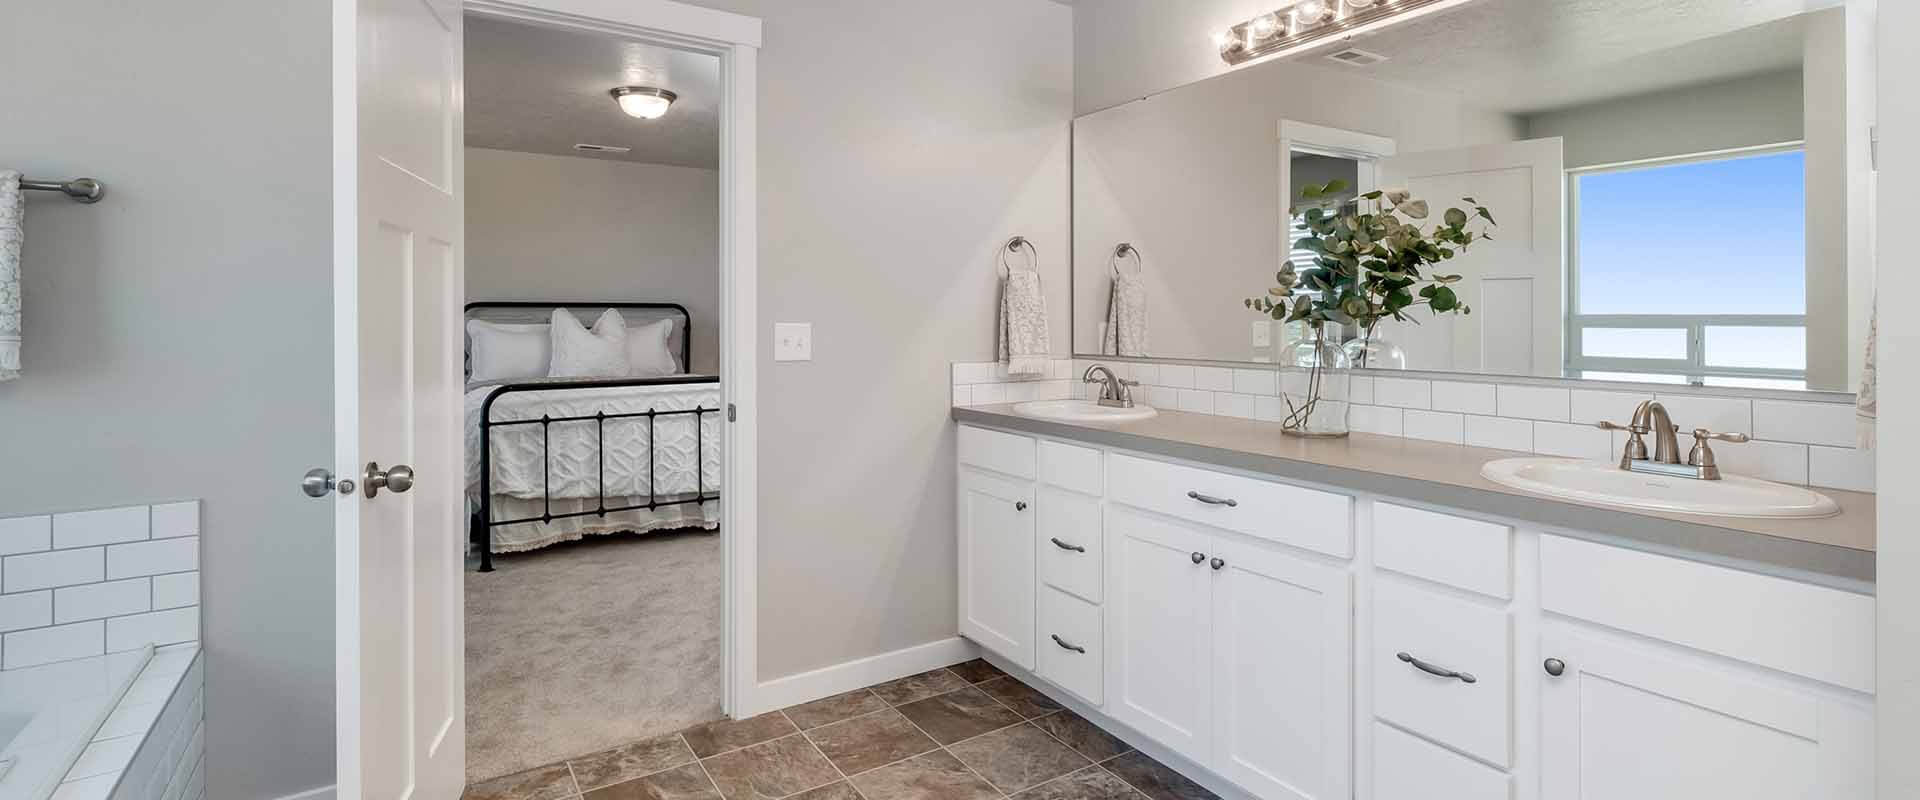 Garnet_Hubble_Homes_New_Homes_Boise_Bathroom.jpg